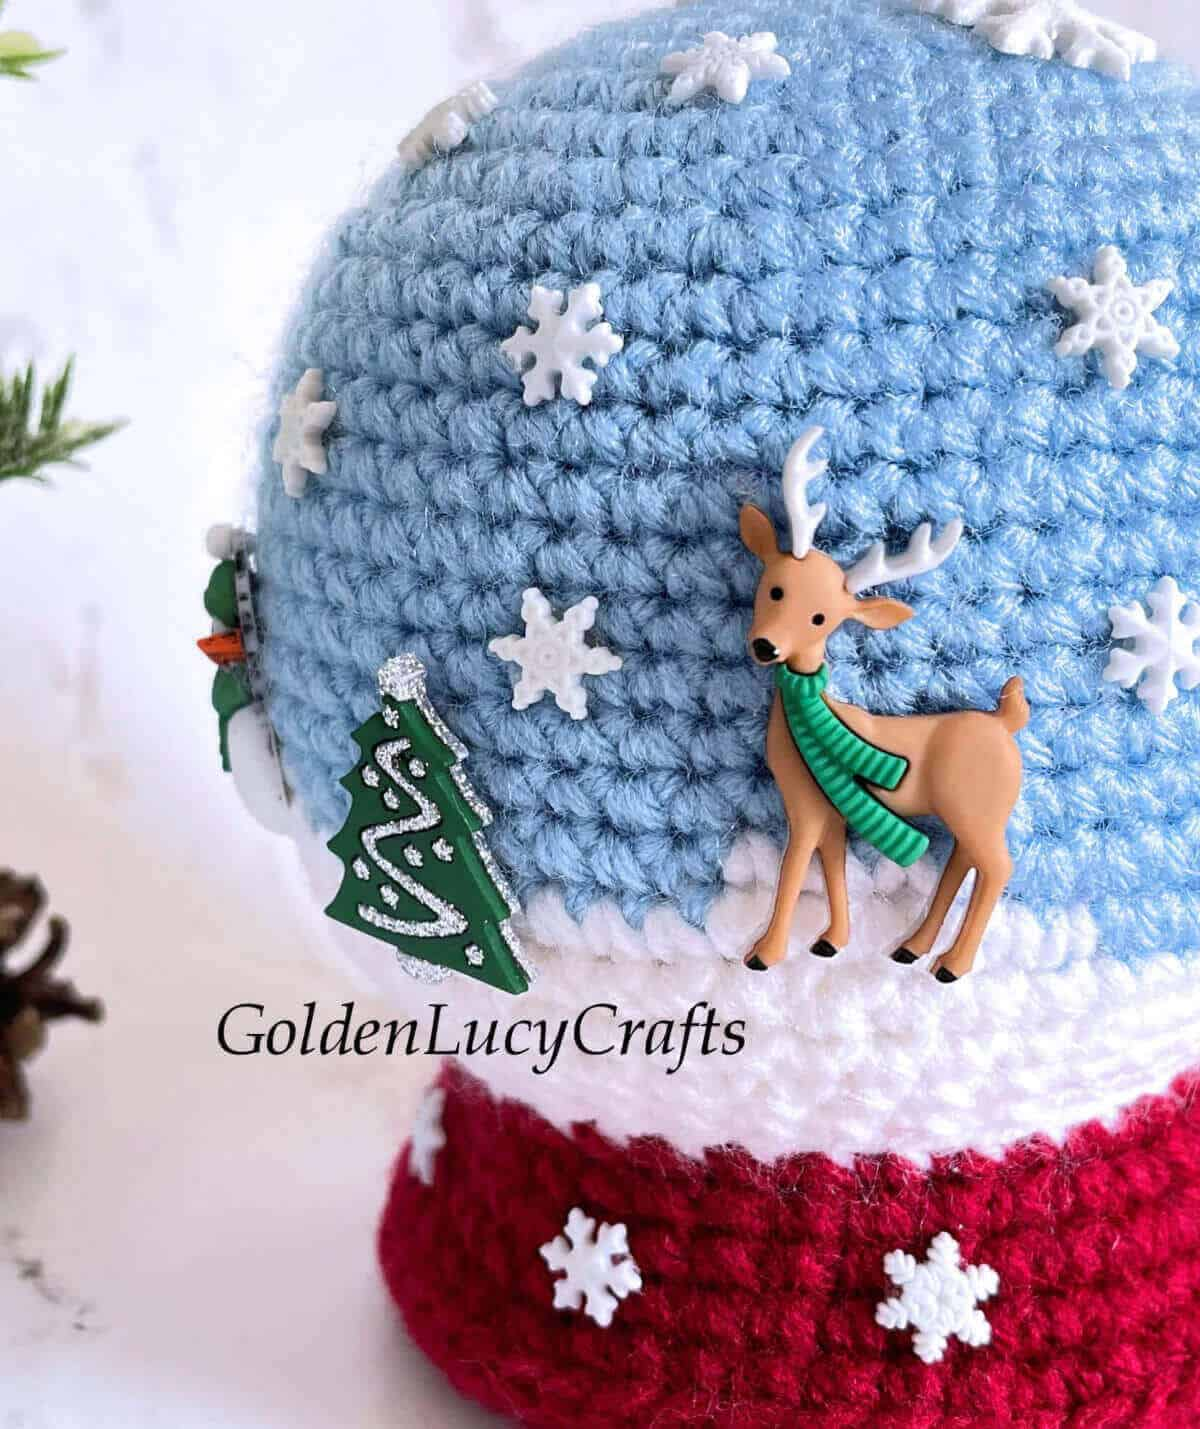 Crocheted snowglobe toy embellished with winter-themed buttons close up picture.